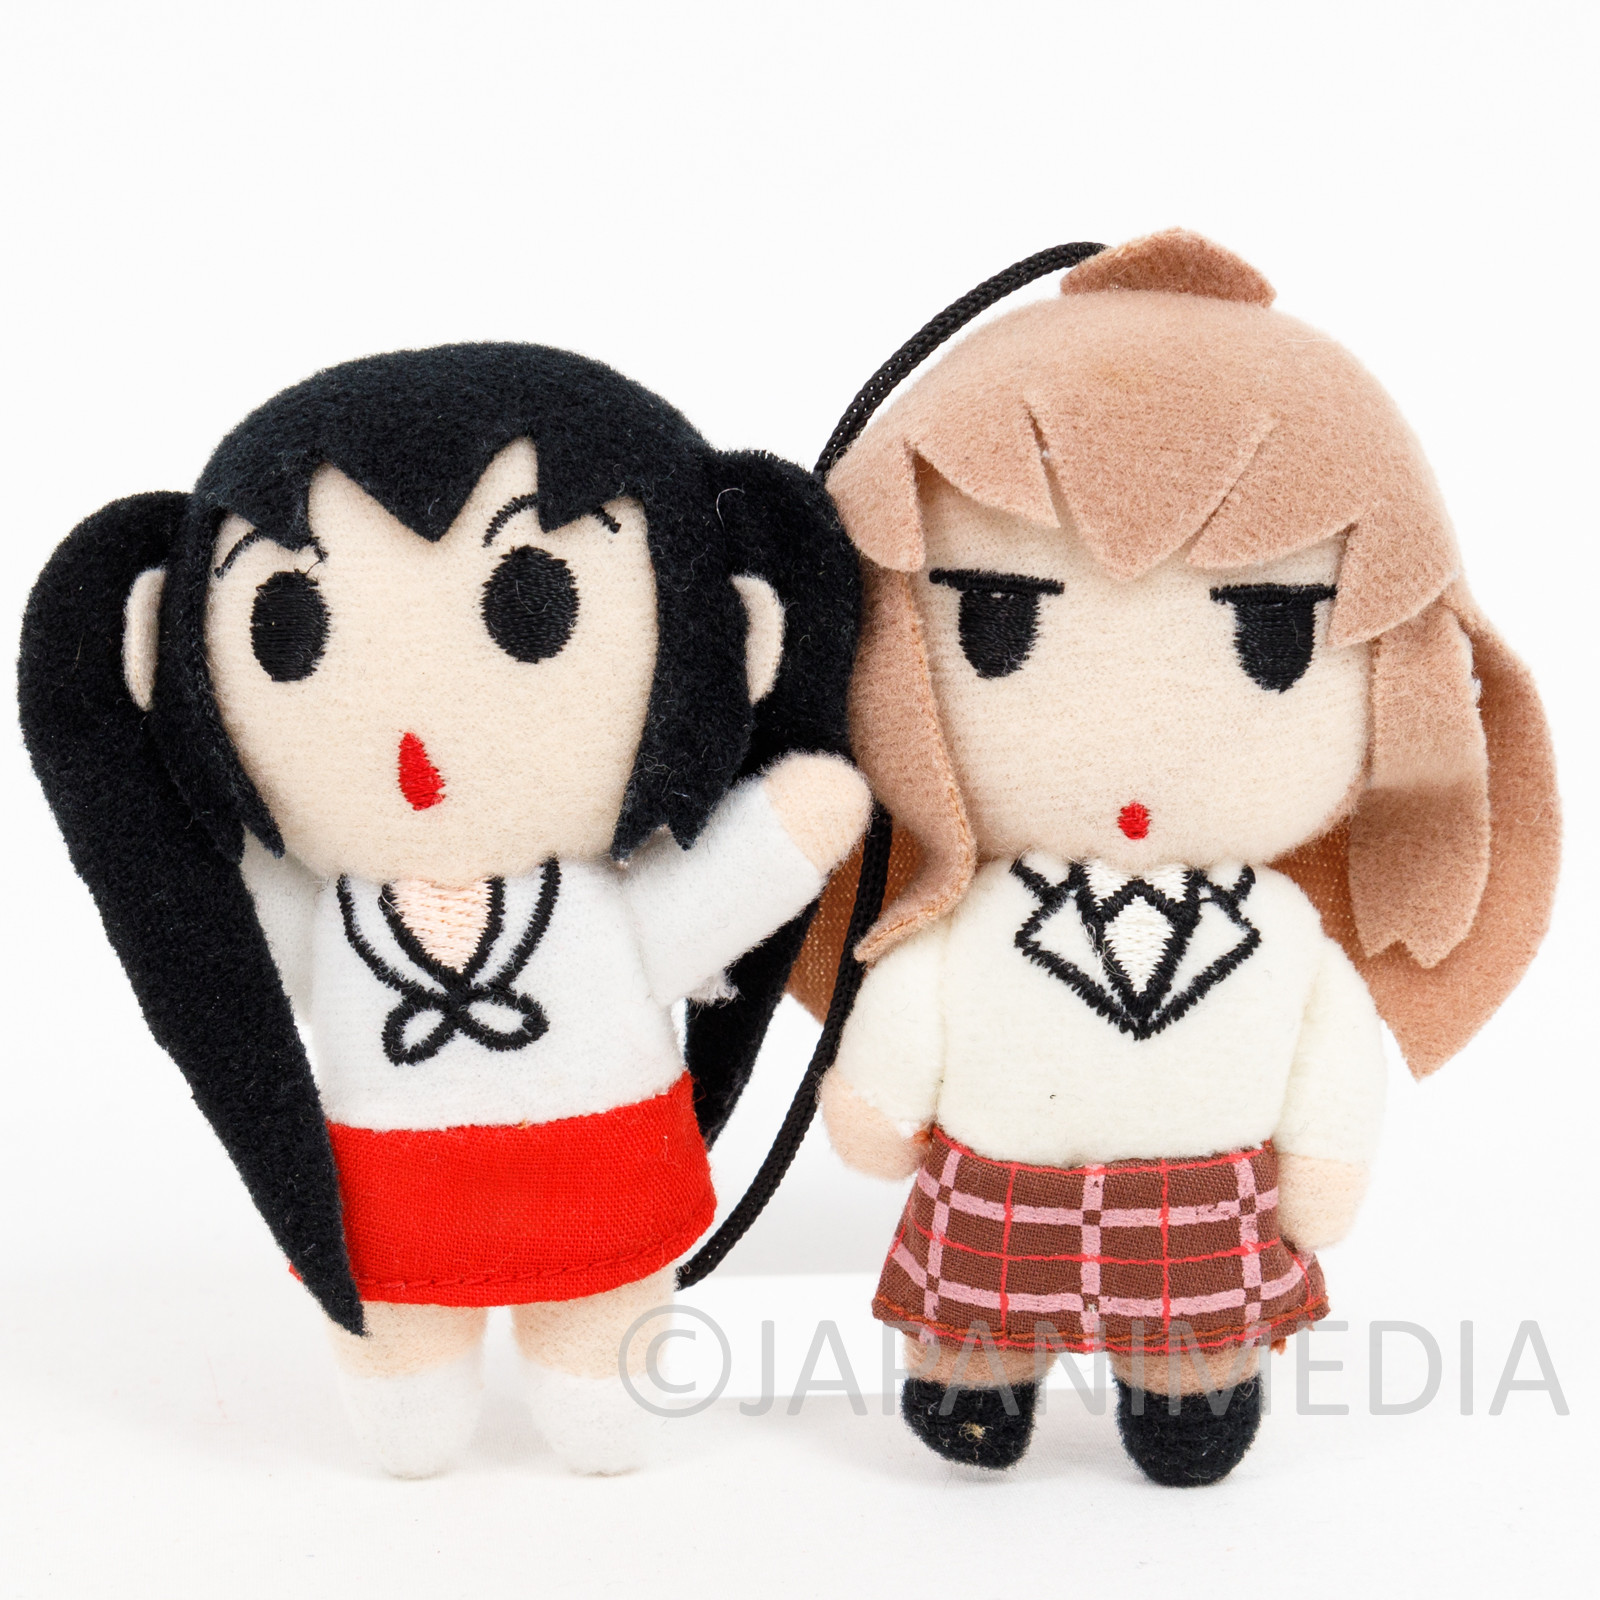 Minamike Natuna & Chiaki Small Plush Doll Set JAPAN MANGA ANIME